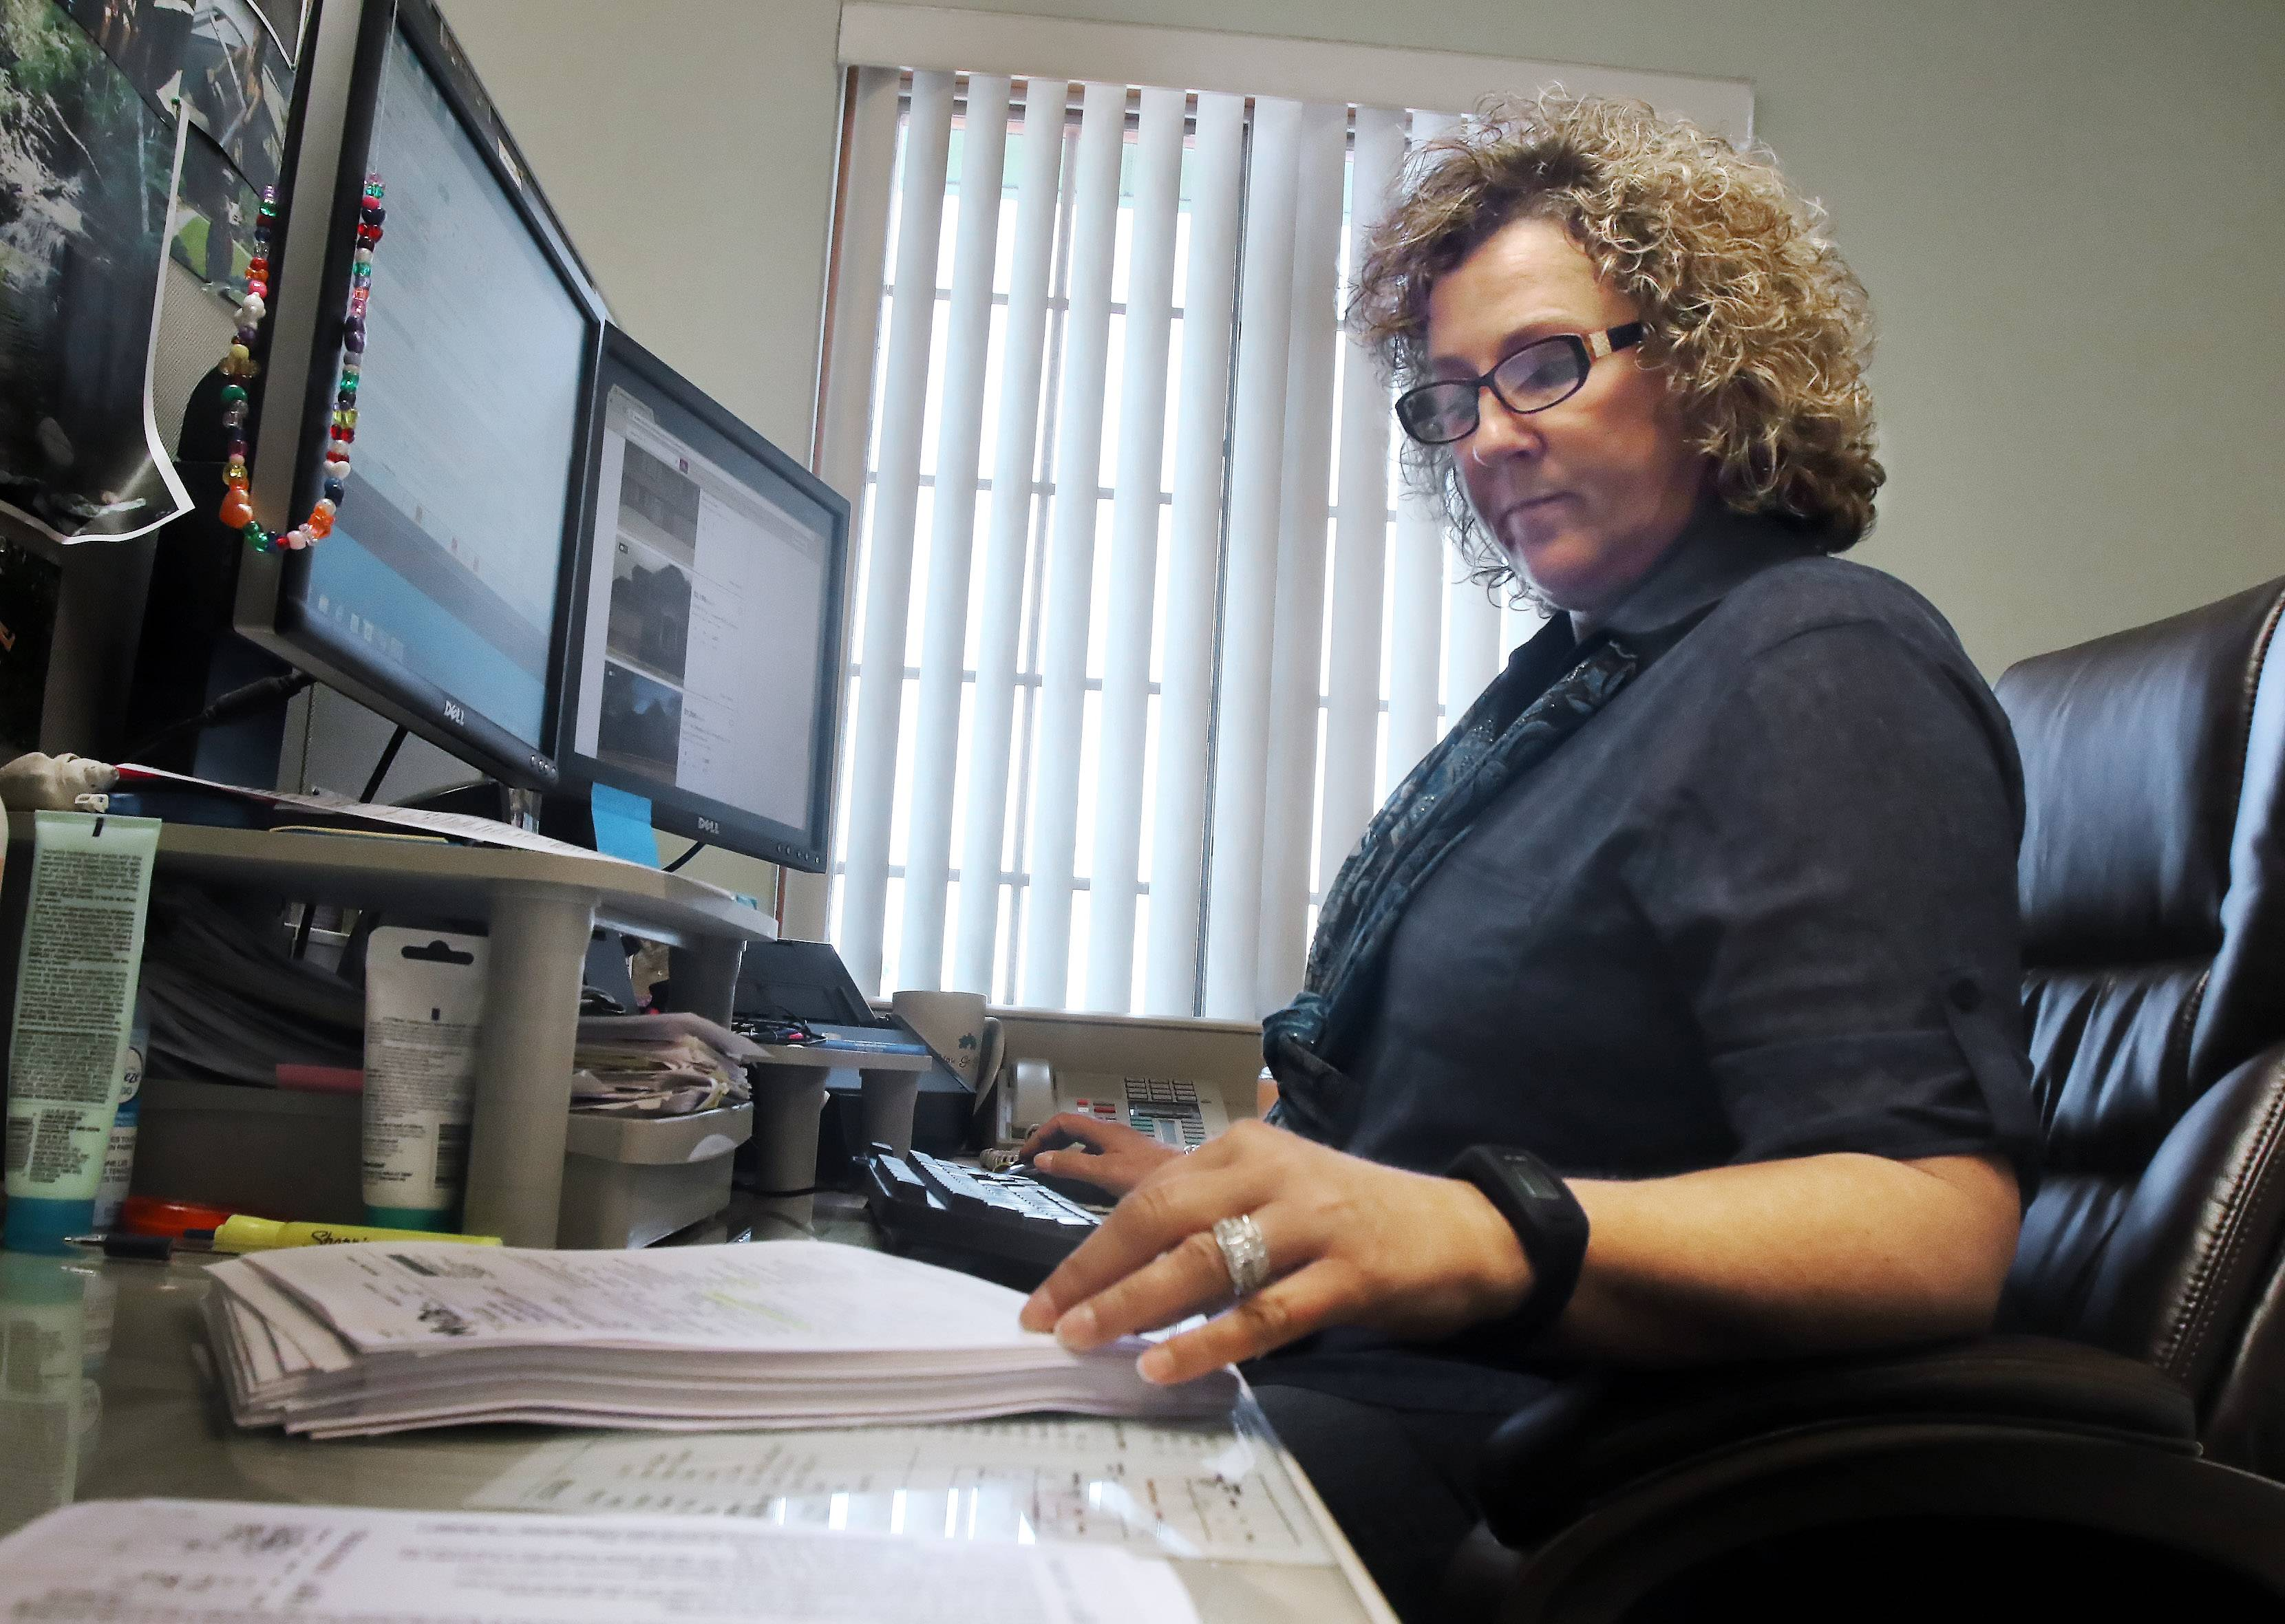 Grant Township Deputy Assessor Angela Wold uses a variety of resources like home sales data, real estate listings and utility billing to determine if someone is getting a property tax exemption they aren't entitled to receive.